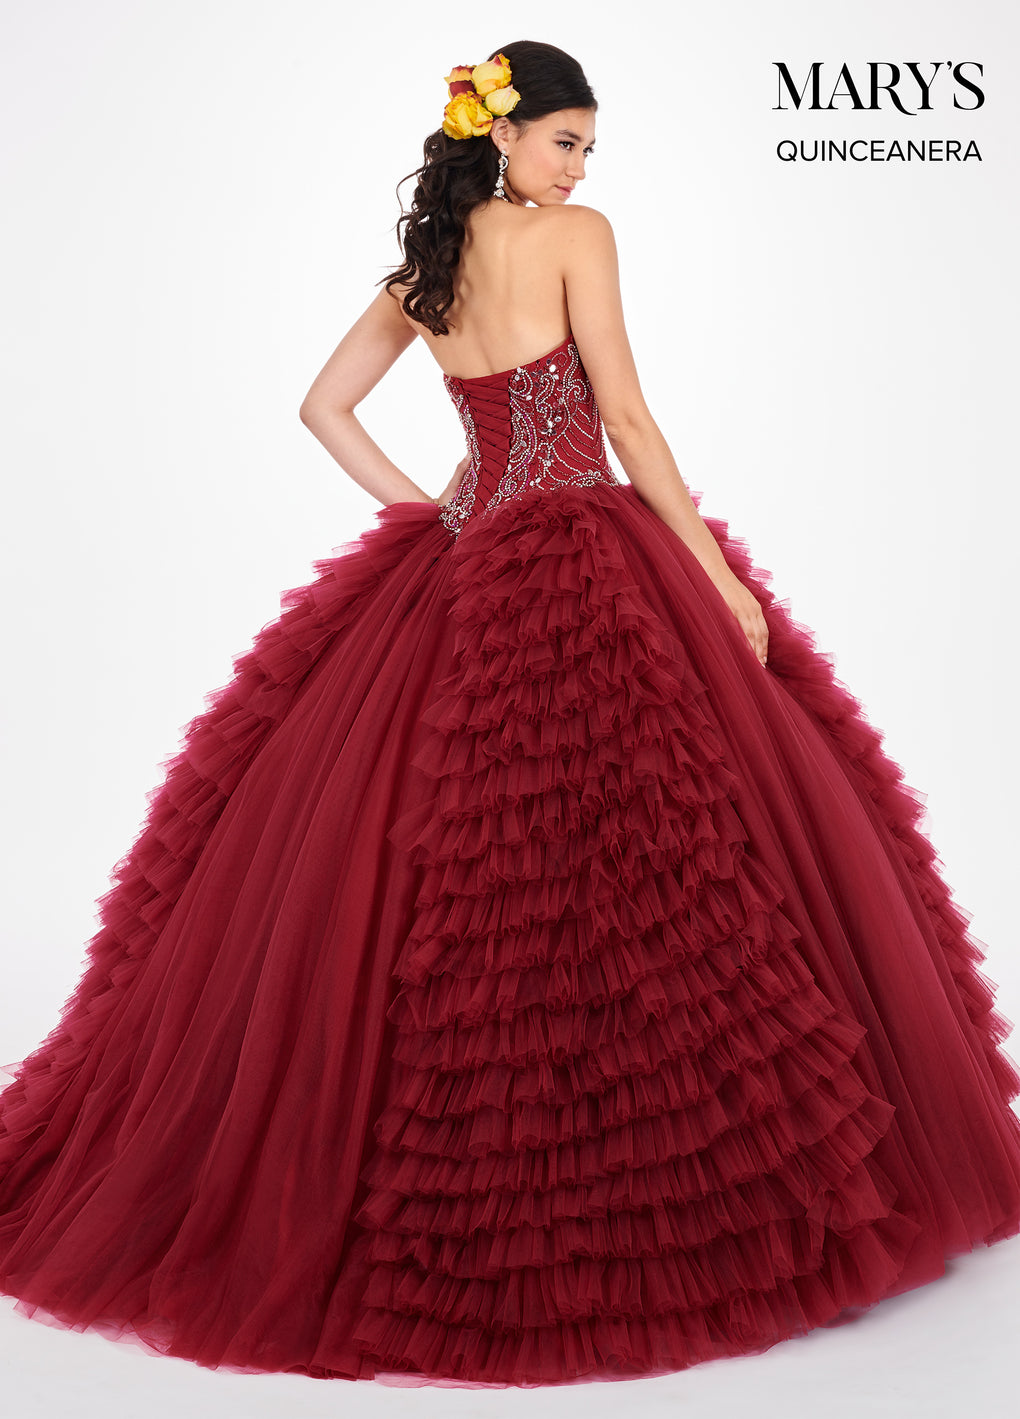 Marys Quinceanera Dresses in Burgundy or Dark Champagne Color